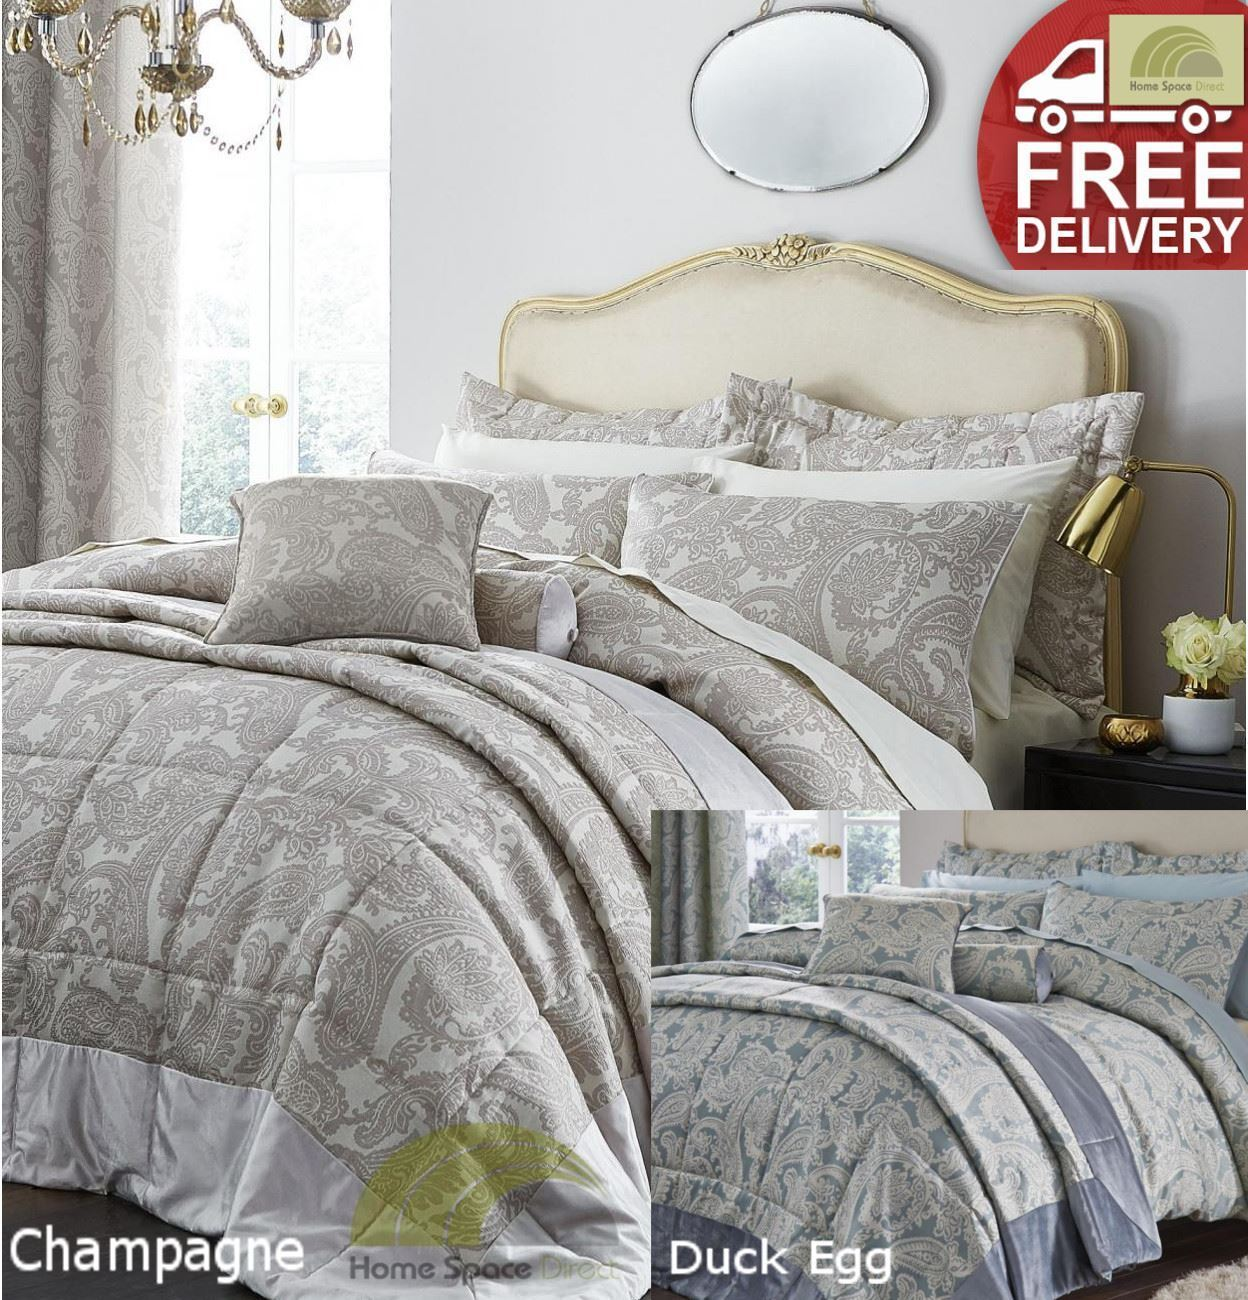 Luxury Jacquard Duvet Cover Set or Curtain or Bedspread or Cushion Or Pillowsham